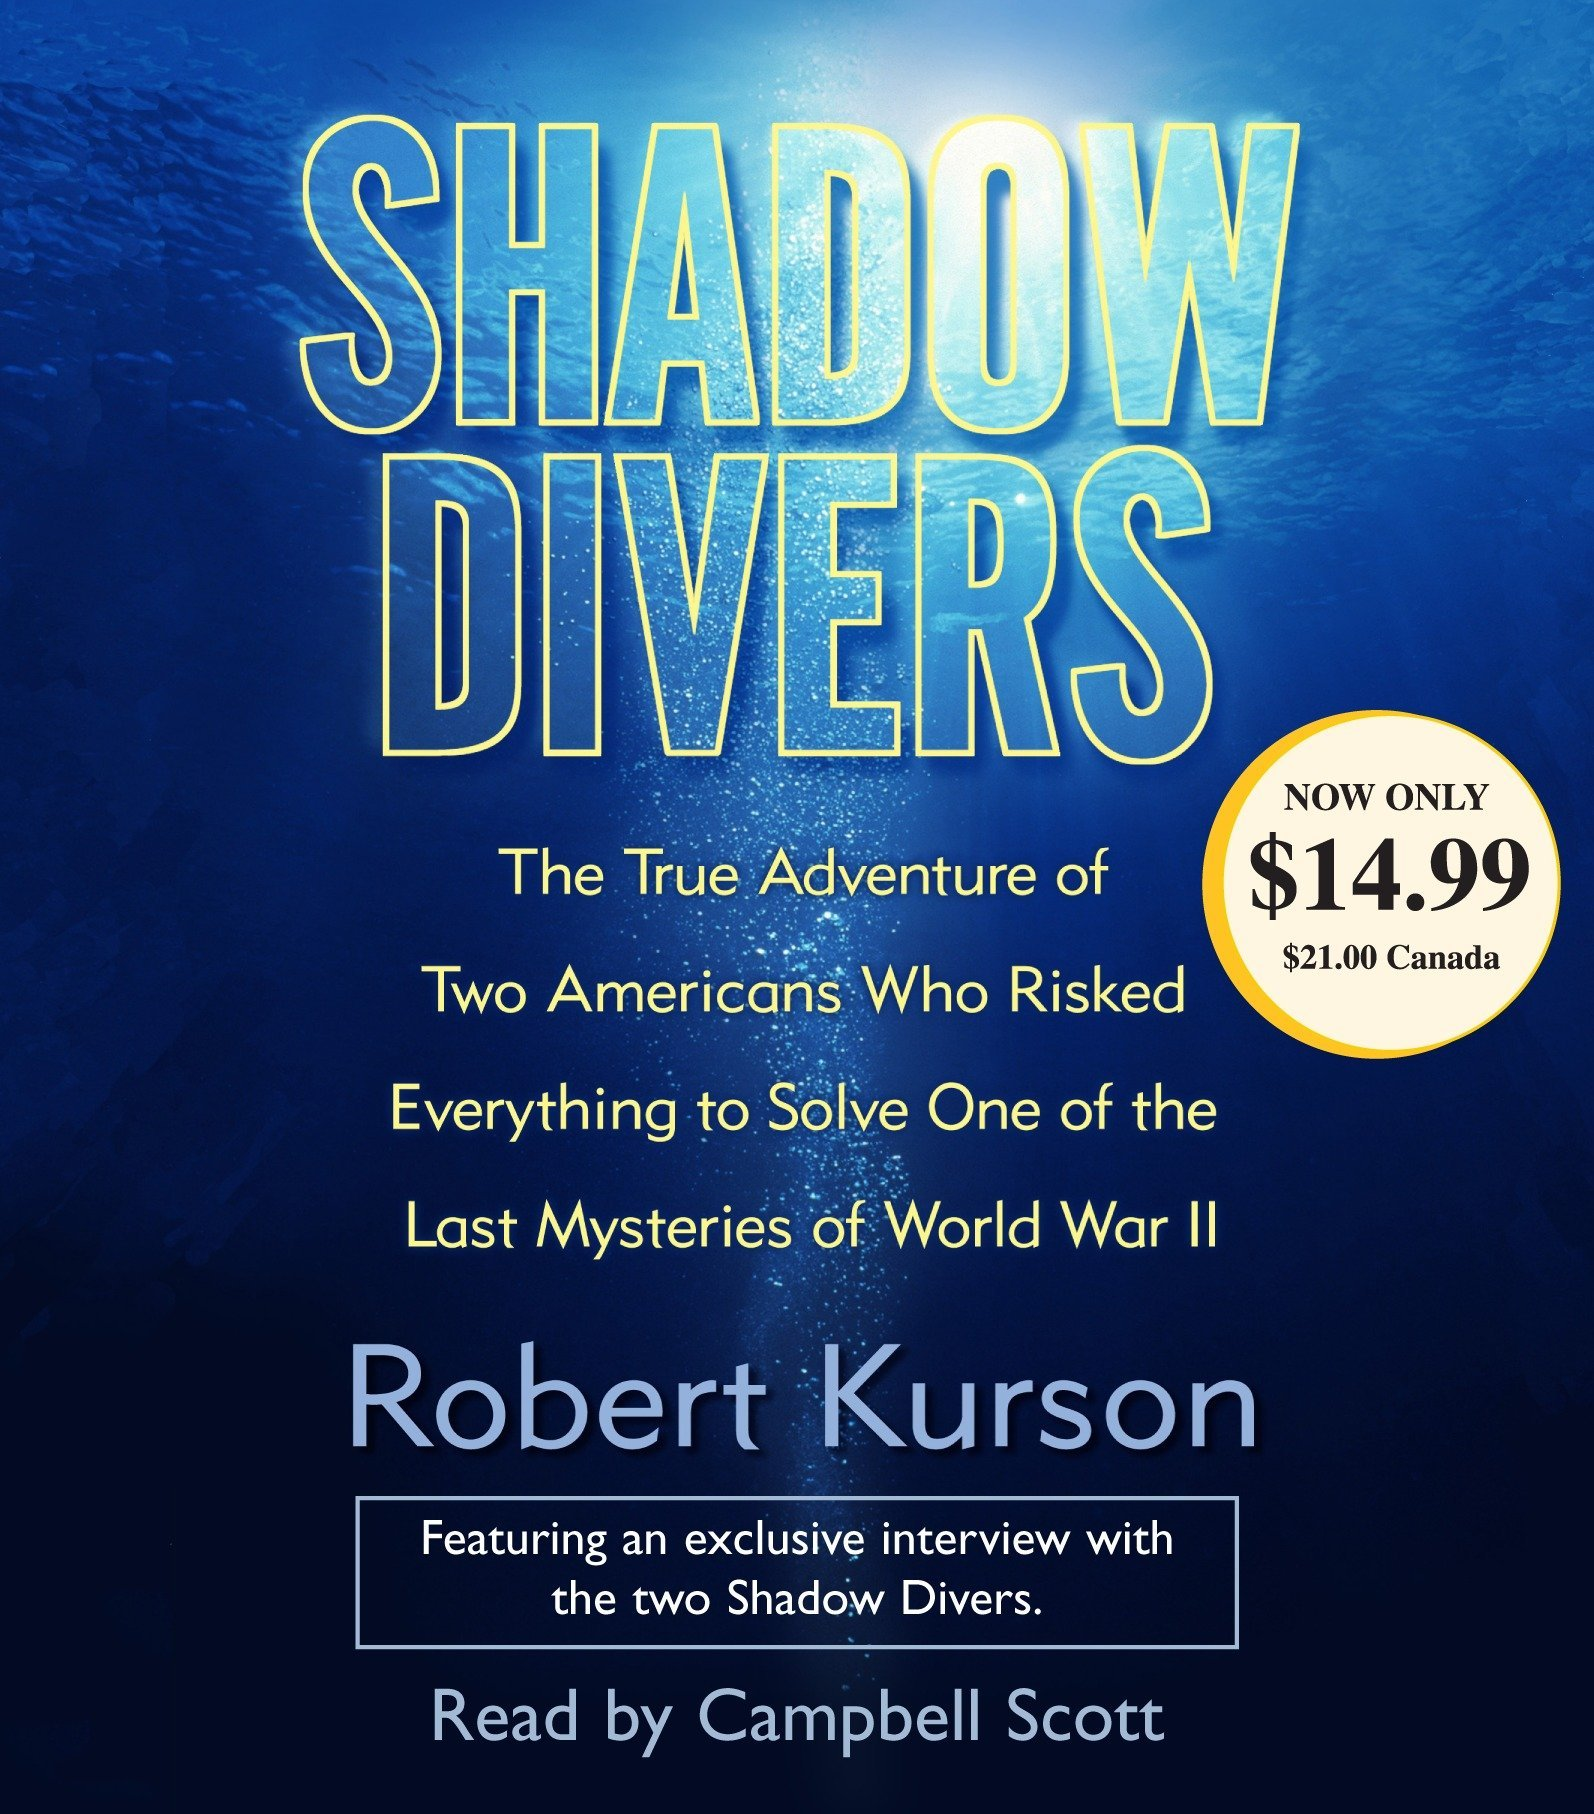 shadow divers summary